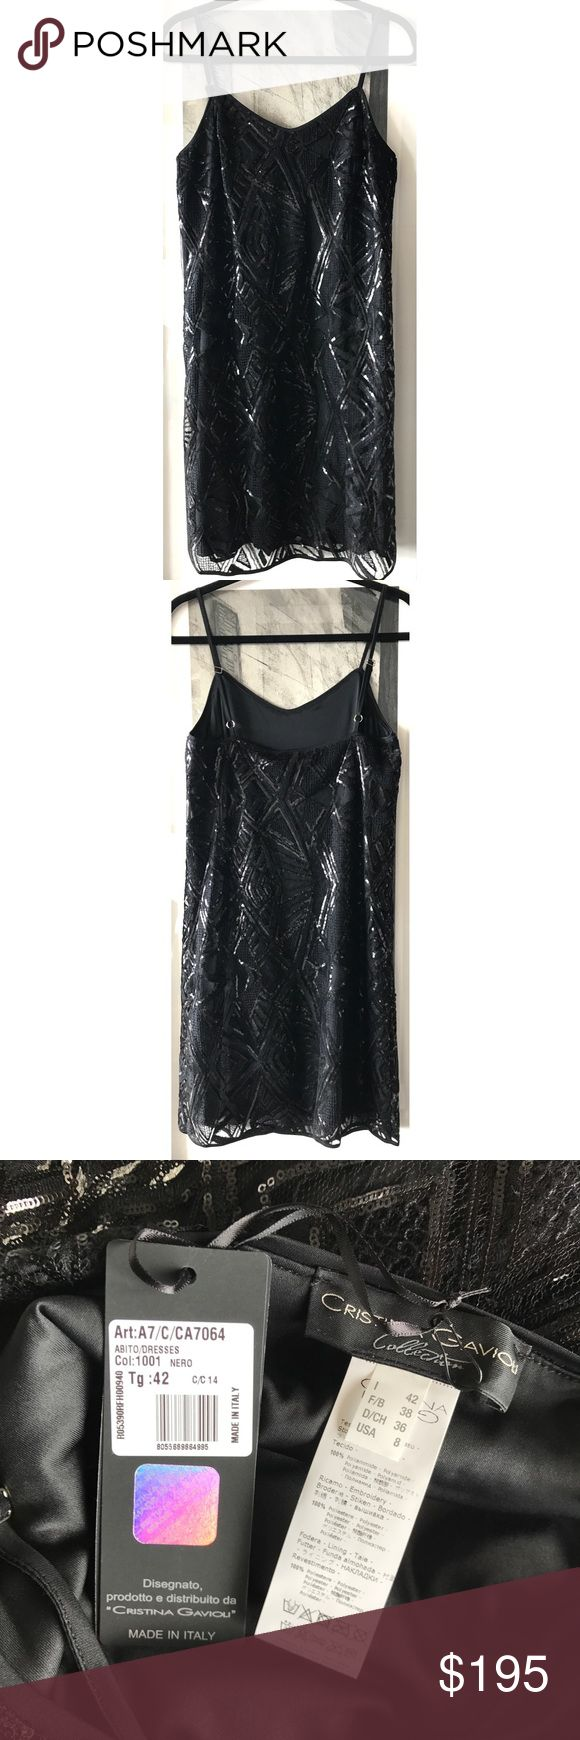 🆕 NWT Barneys NY Cristina Gavioli Sequin Dress 🆕 NWT Barneys New York Cristina Gavioli Sequin Shift Dress for Fall 2017 (current season).  100% polyester.  Italian size 42/US Size 6-8 or Medium.  Gorgeous Dress.  Made in Italy.  Collection carried at Neiman Marcus and Barneys NY; high end designer piece.  Tags on dress; perfect t condition; flawless; boutique quality. Barneys New York Dresses